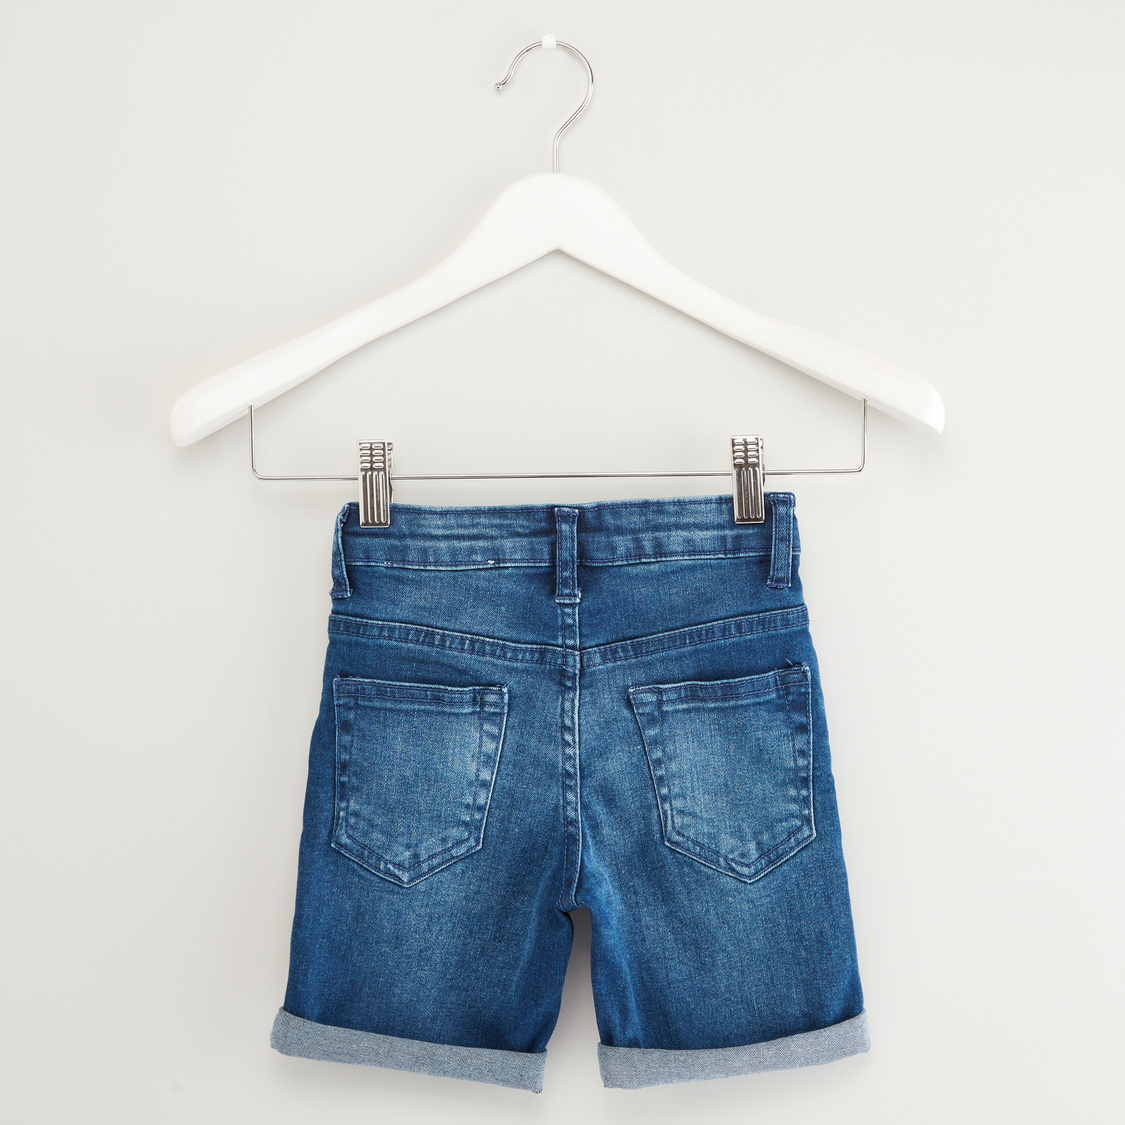 Textured Denim Shorts with Belt Loops and Pocket Detail